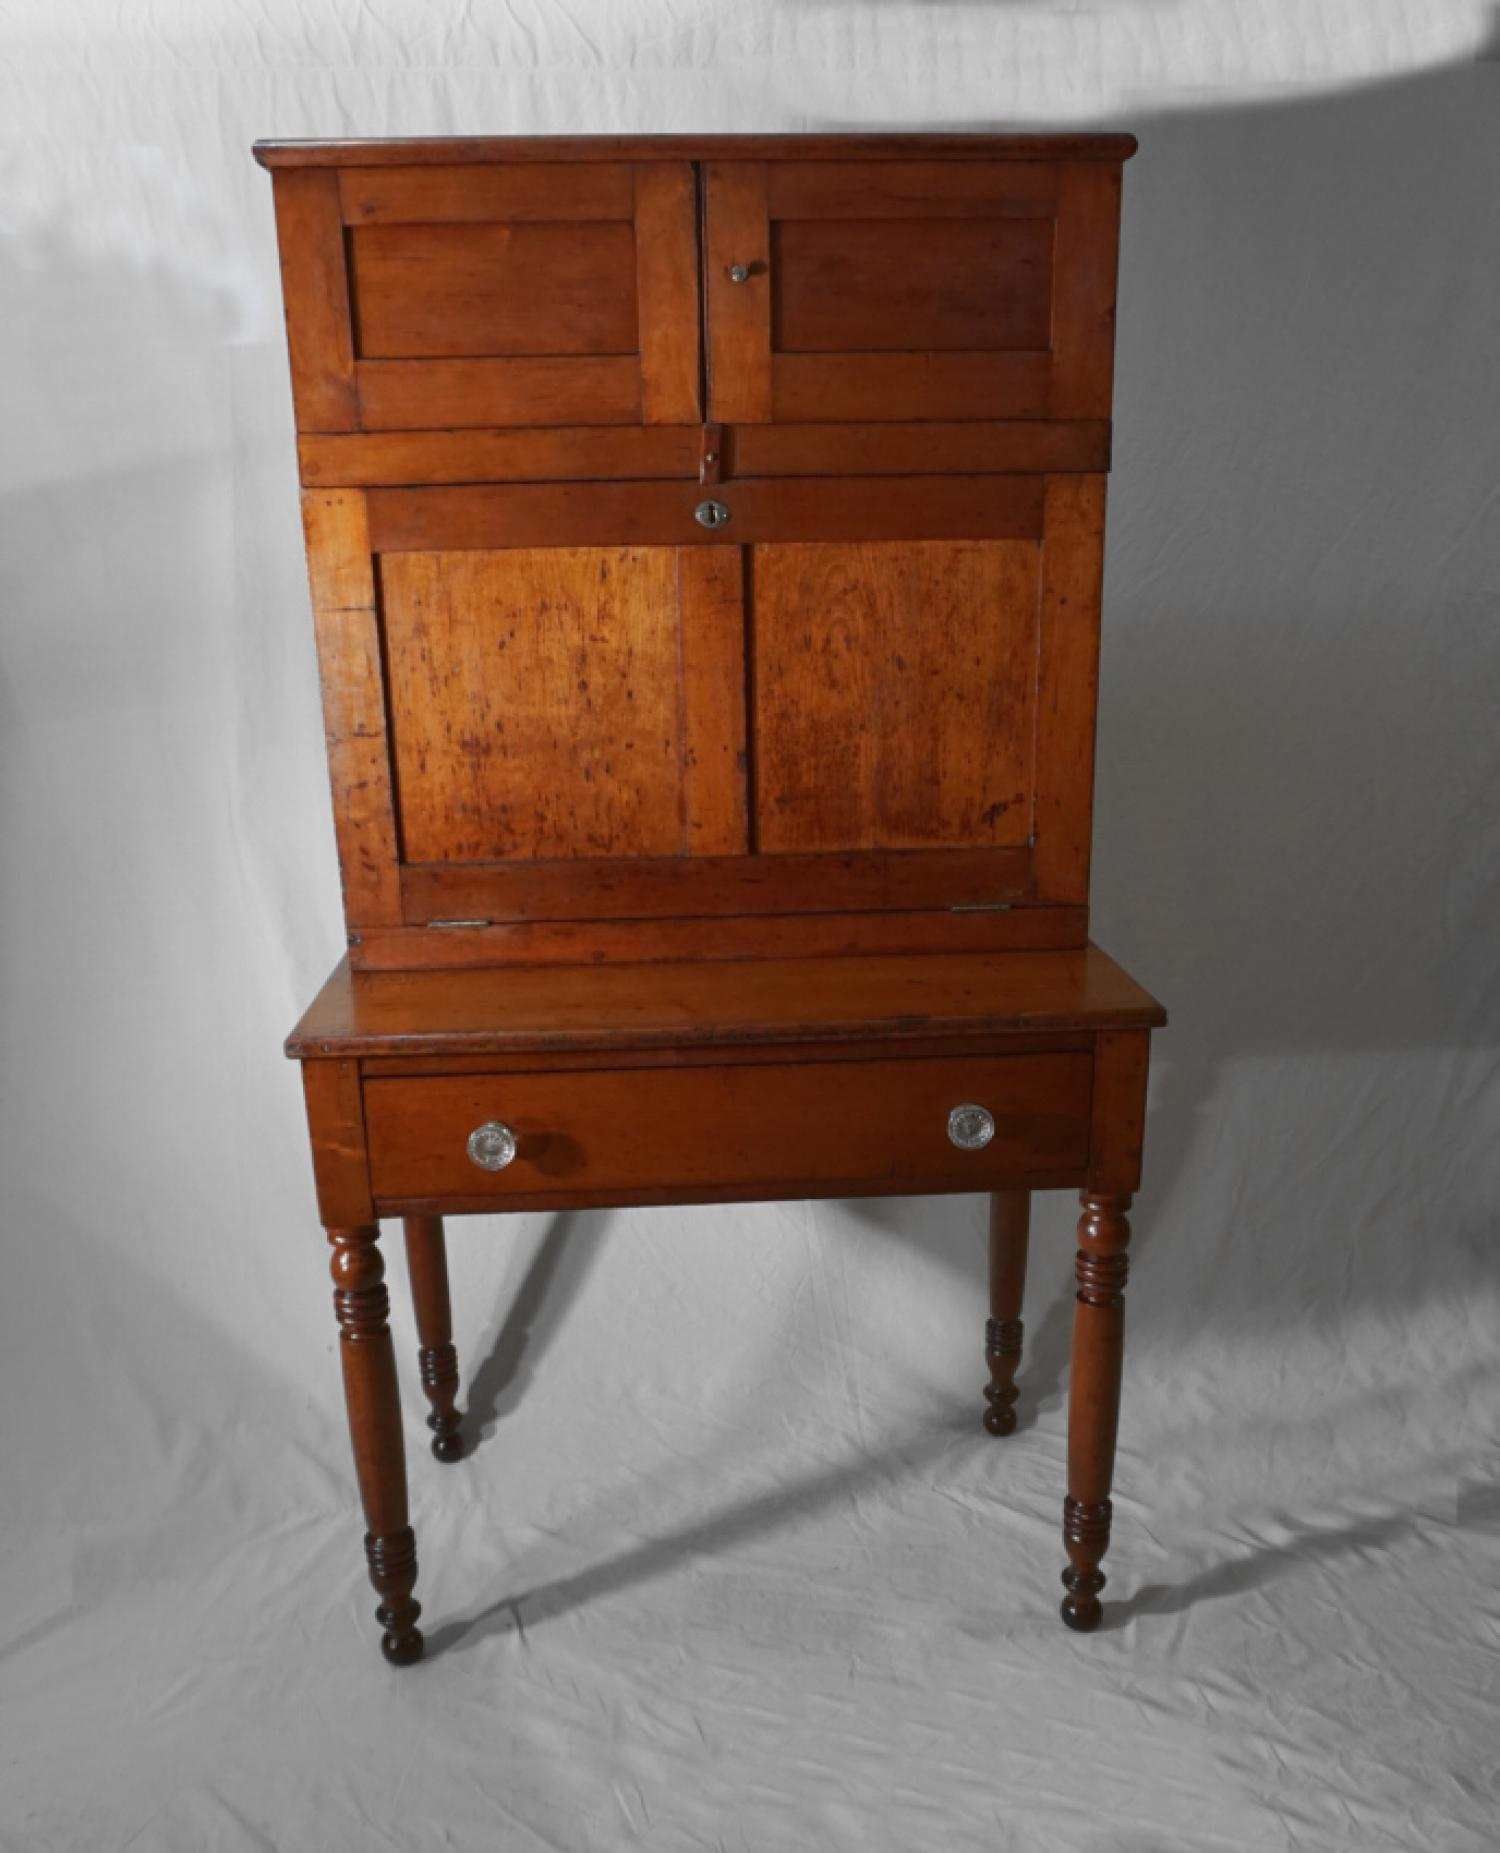 Early American cherry paymasters desk c1830